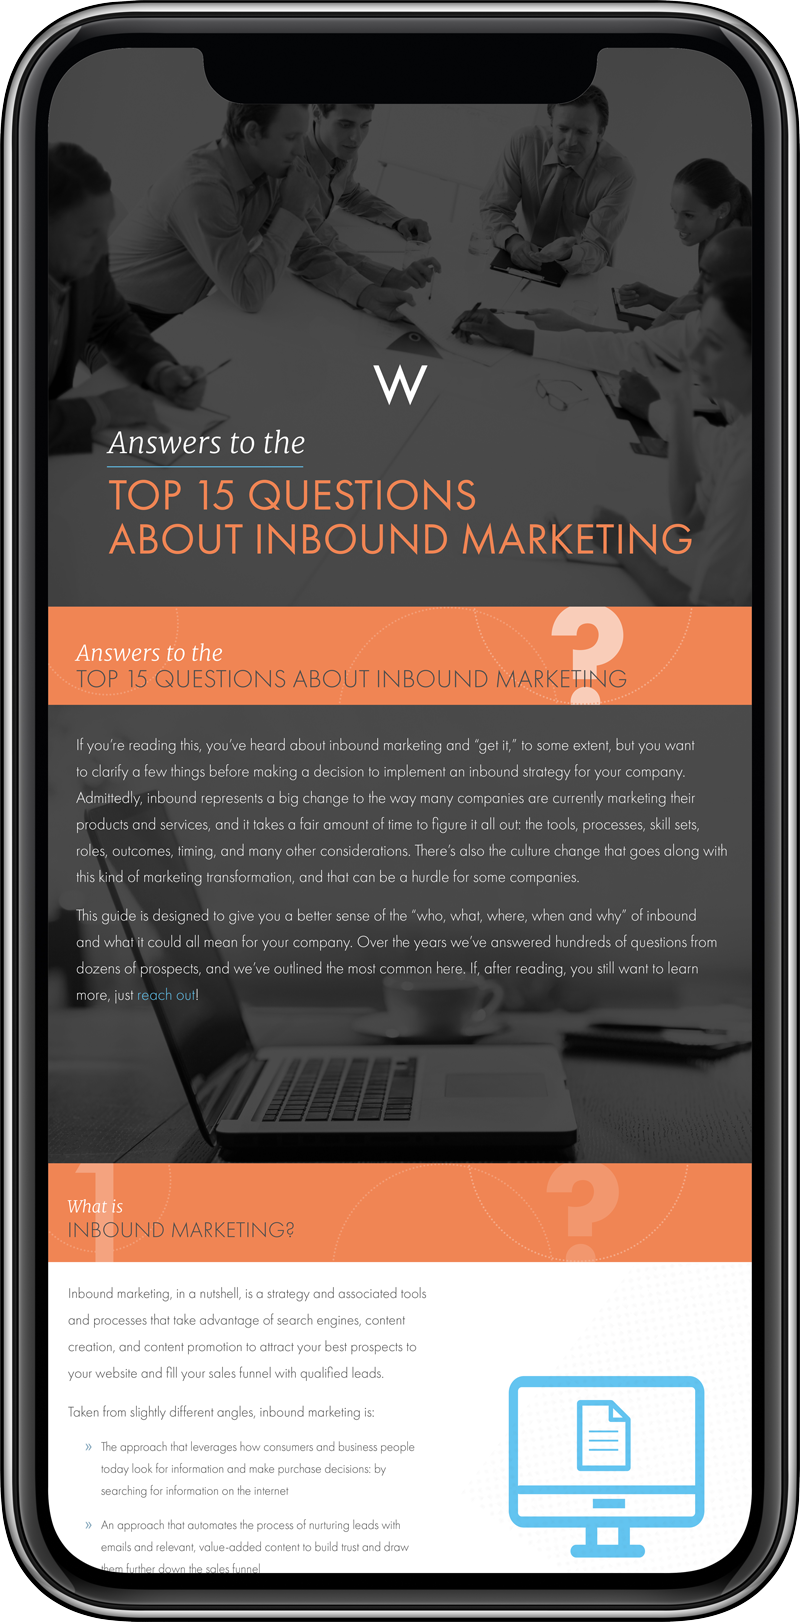 Answers to the Top 15 Questions About Inbound Marketing